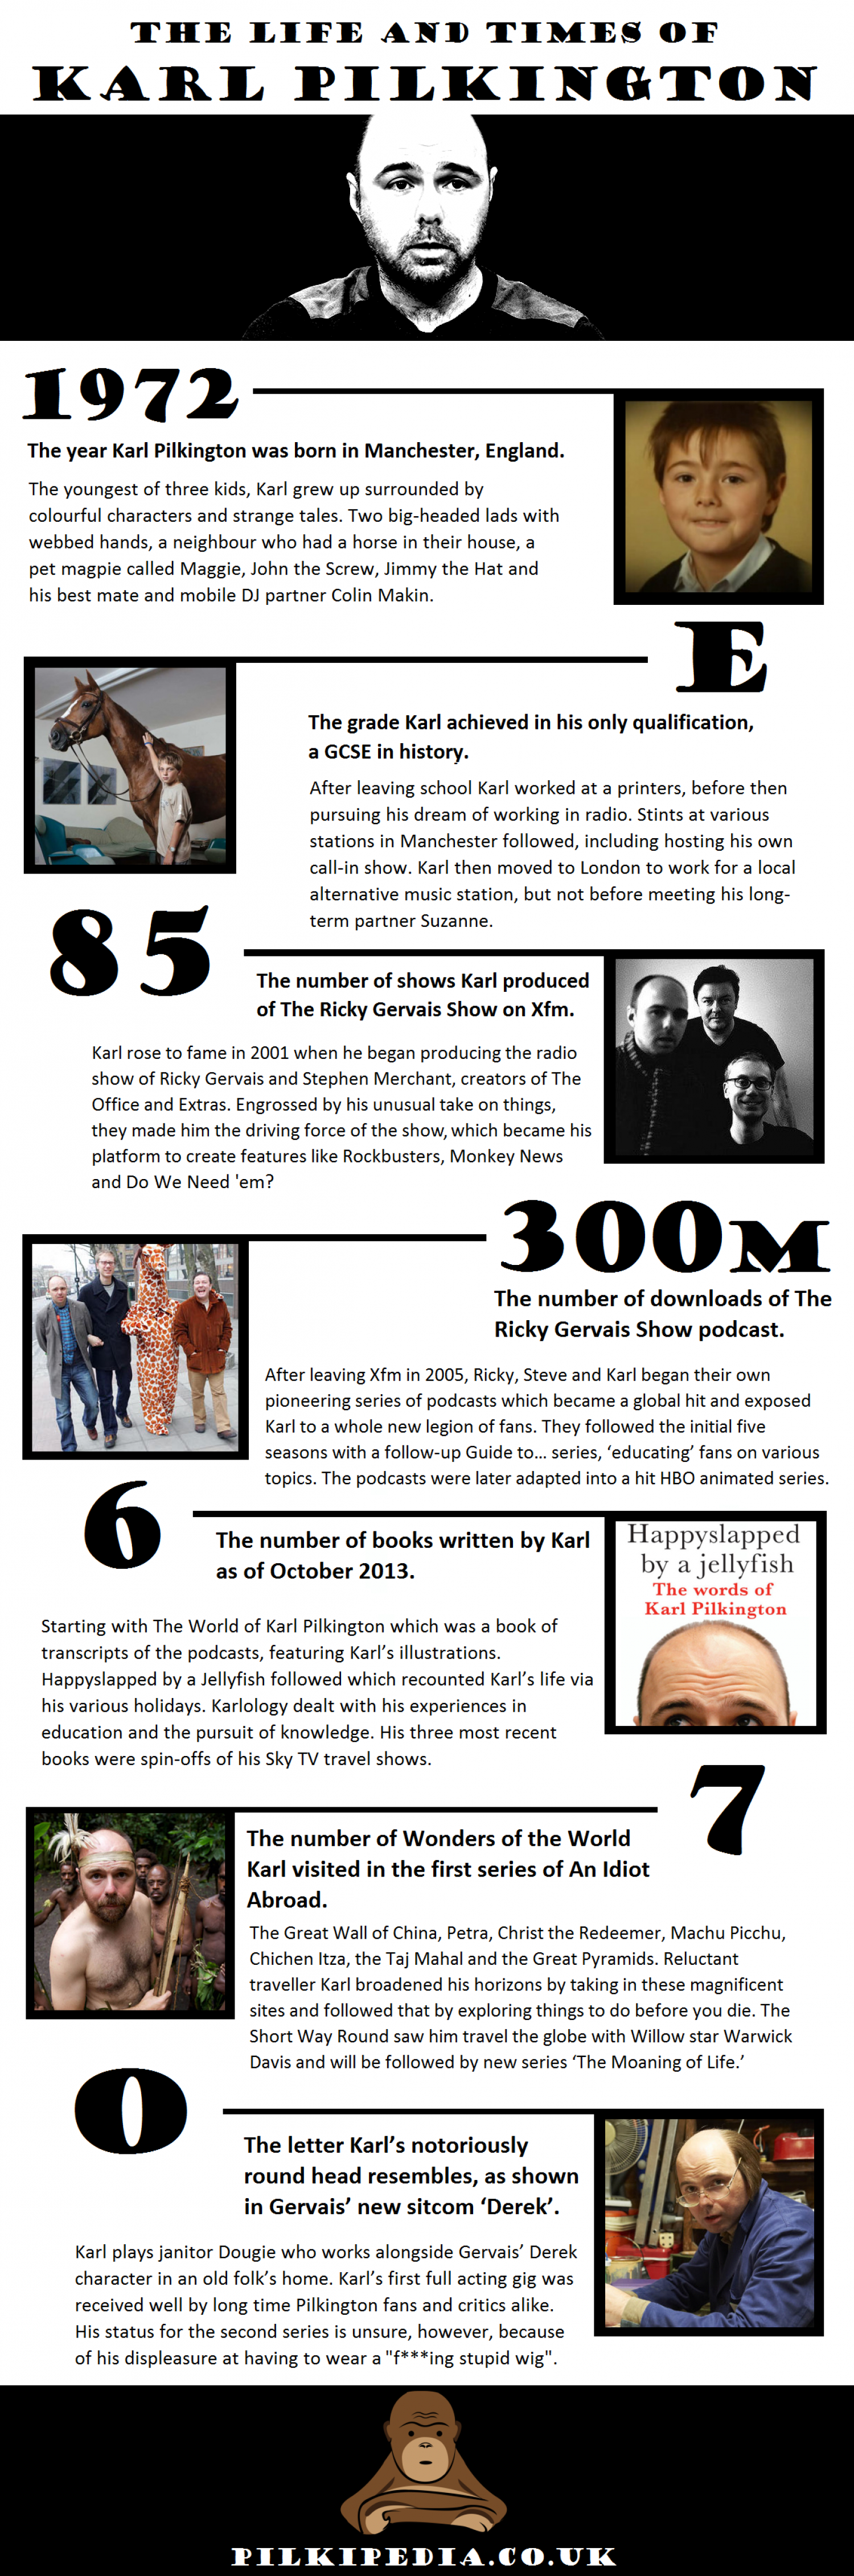 The Life and Times of Karl Pilkington Infographic